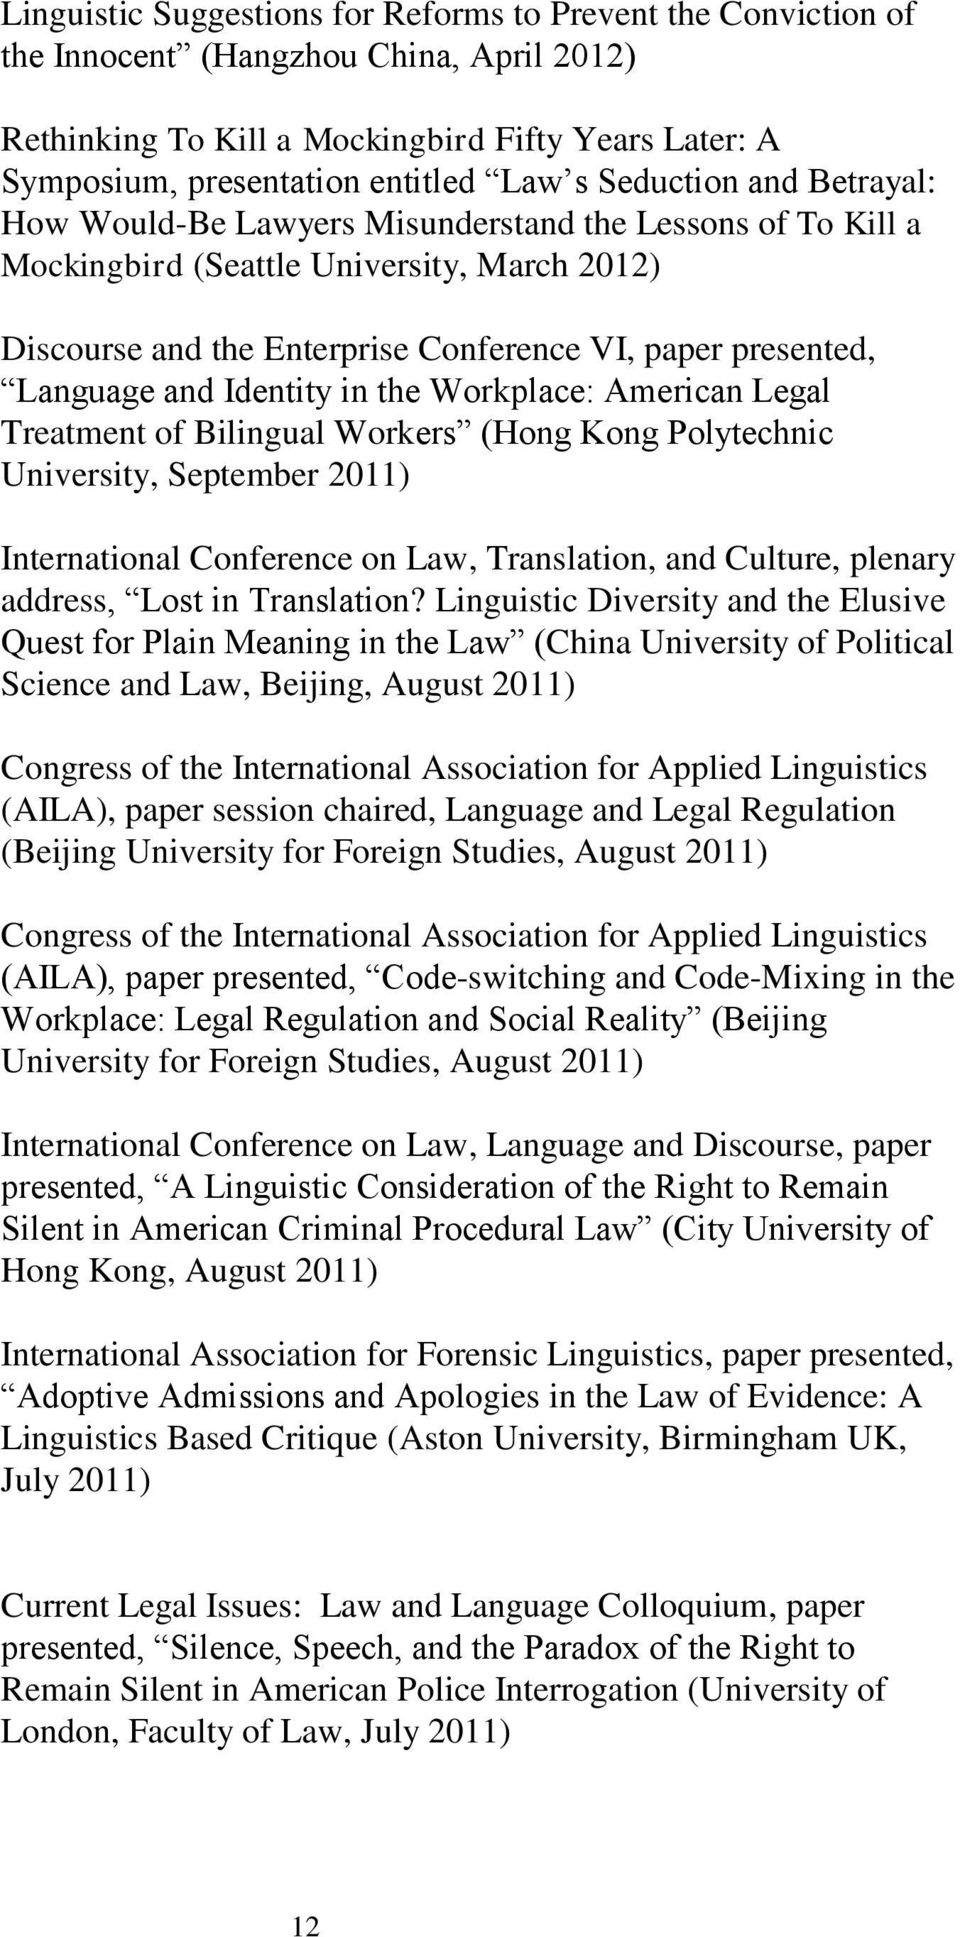 and Identity in the Workplace: American Legal Treatment of Bilingual Workers (Hong Kong Polytechnic University, September 2011) International Conference on Law, Translation, and Culture, plenary